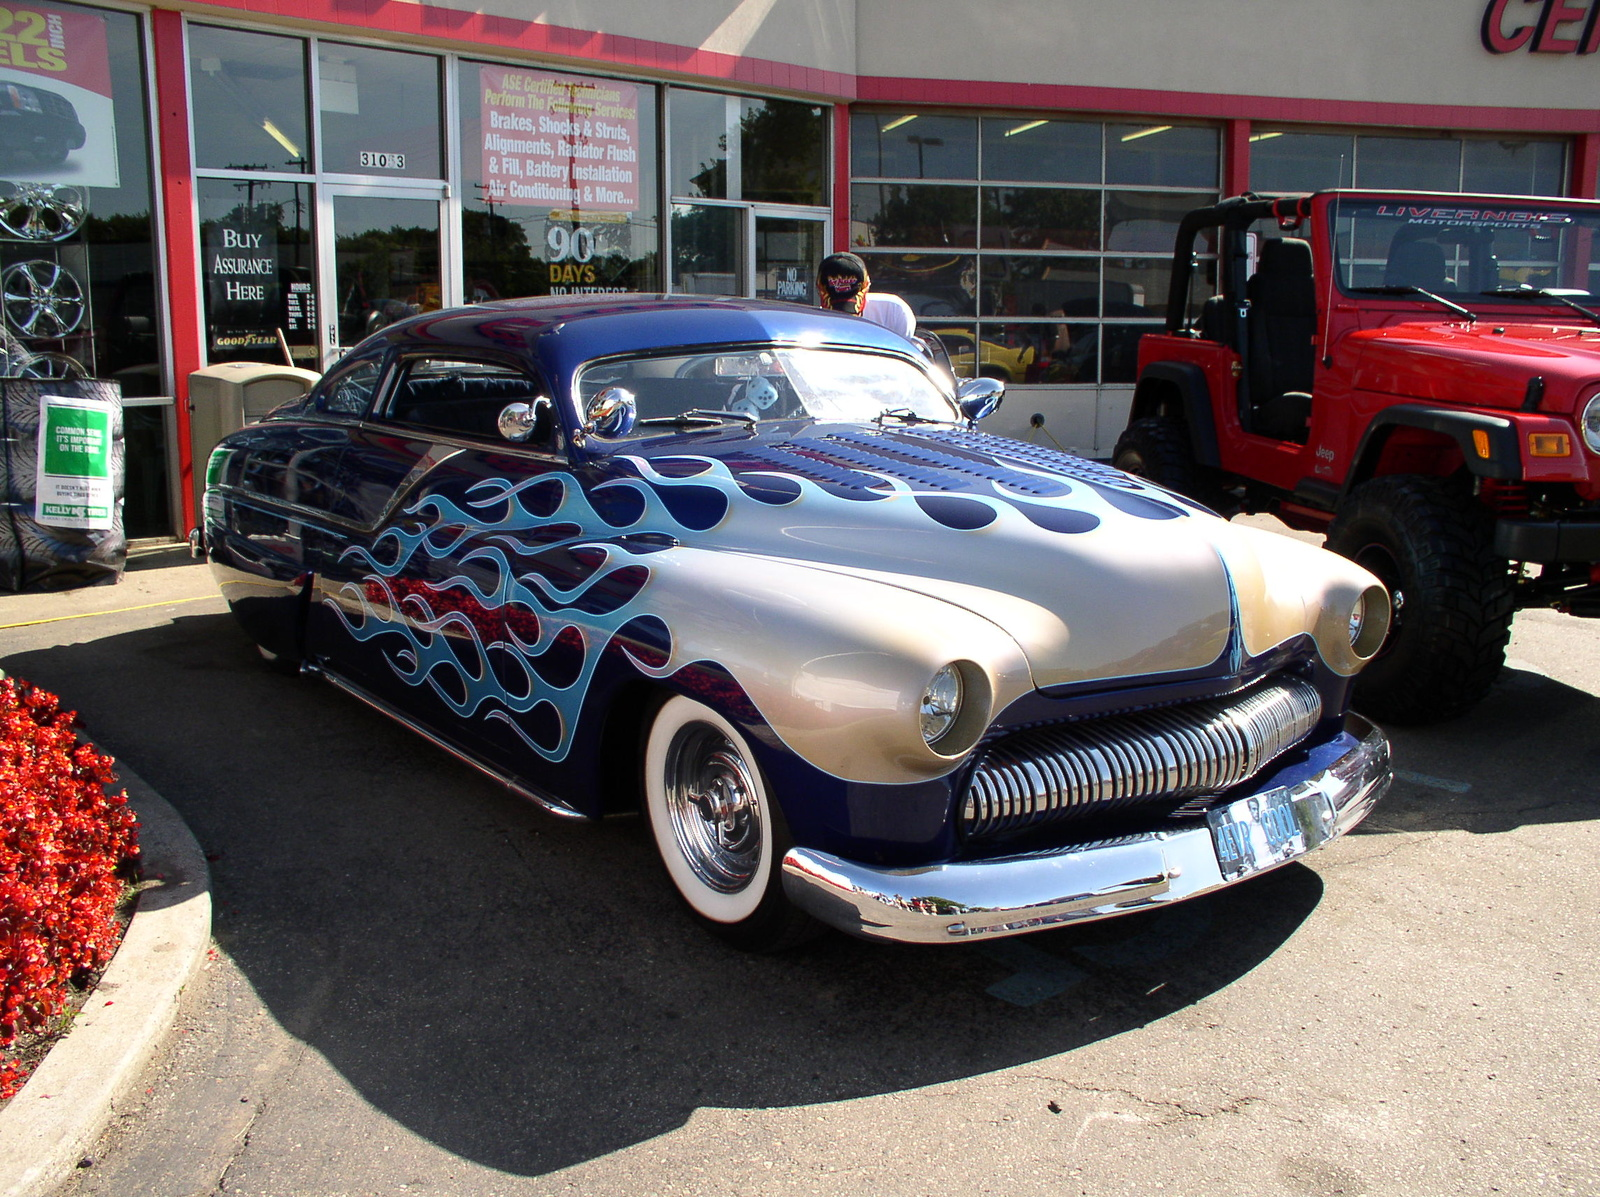 Picture of American model Hudson Hornet hotrod, classic model